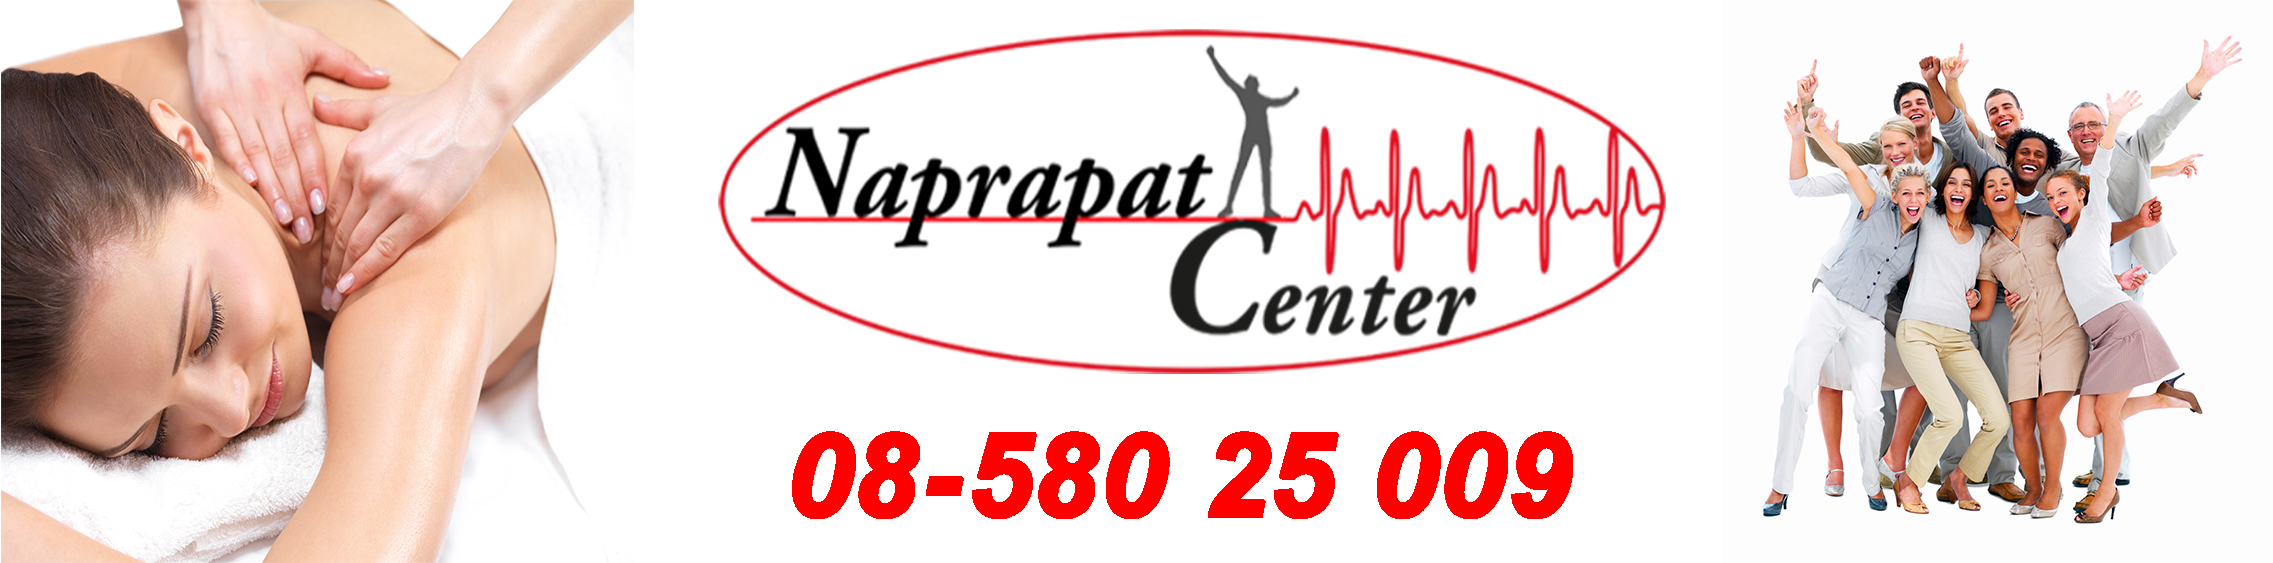 NaprapatCenter AB